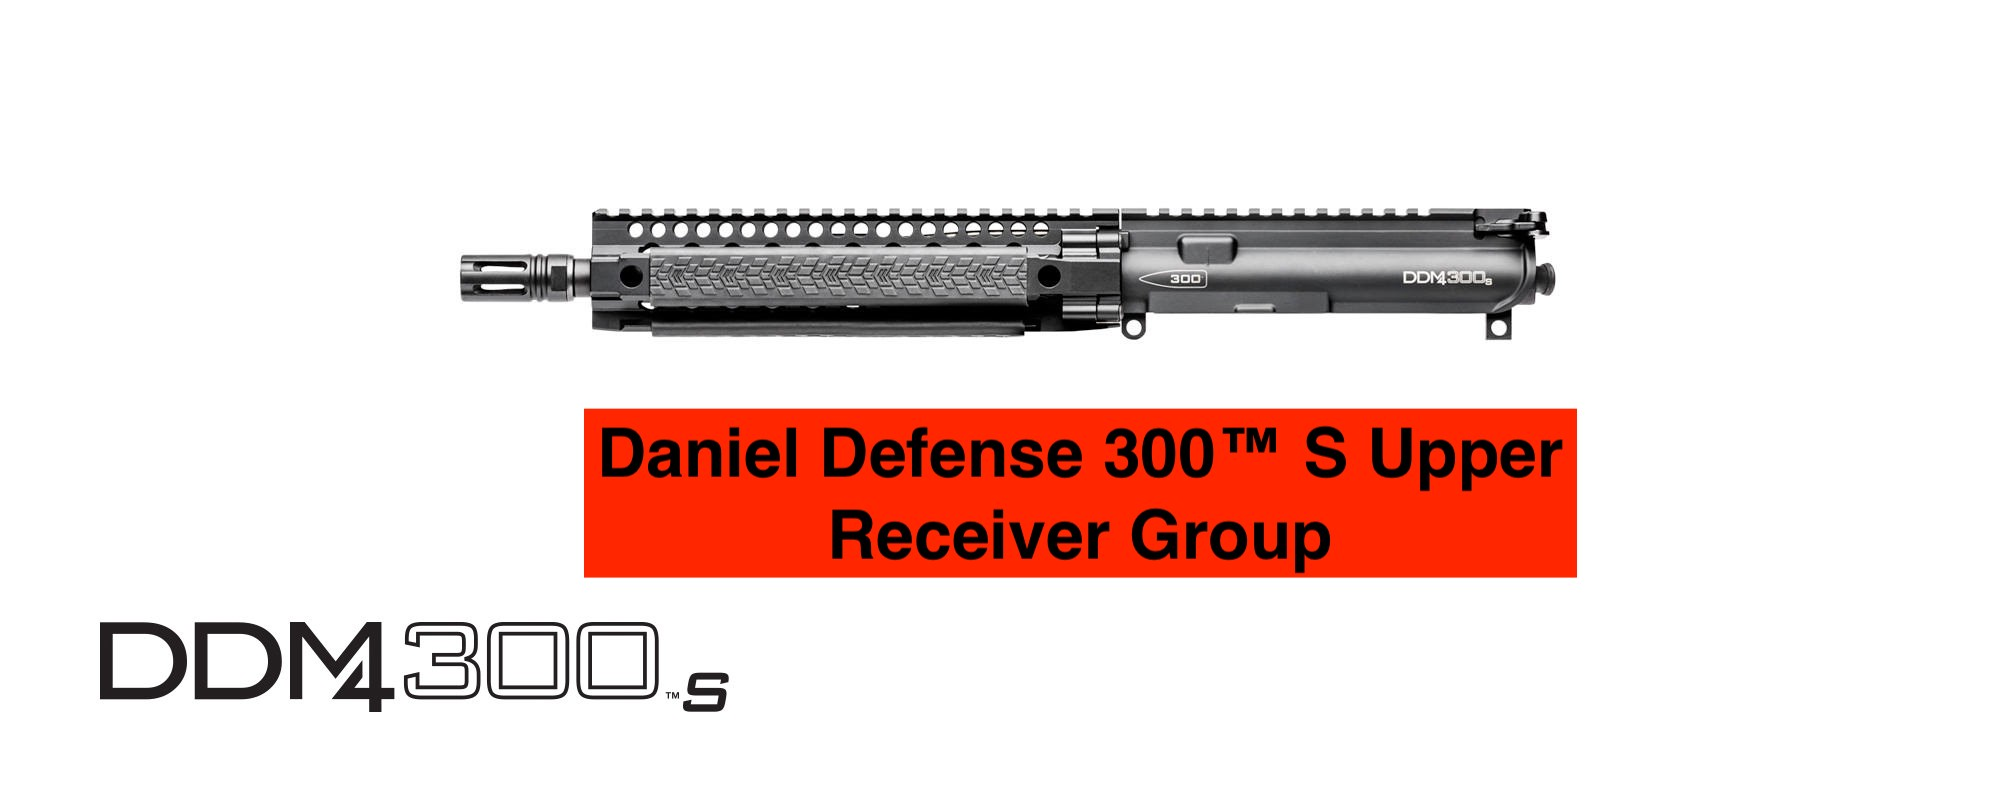 Daniel Defense 300™ S Upper Receiver Group